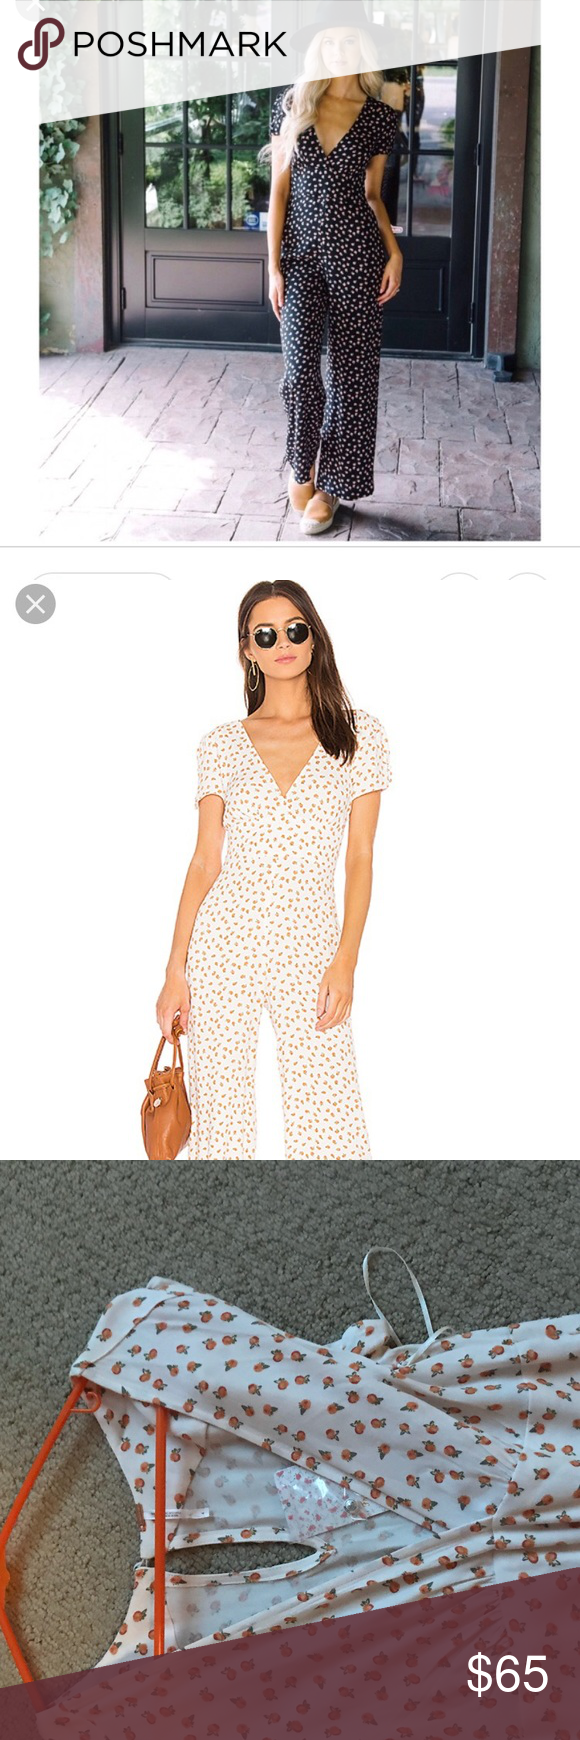 2da50c1bd6c Free people Mia jumpsuit Never worn adorable jumpsuit! Offers welcome no  trades Free People Pants Jumpsuits   Rompers